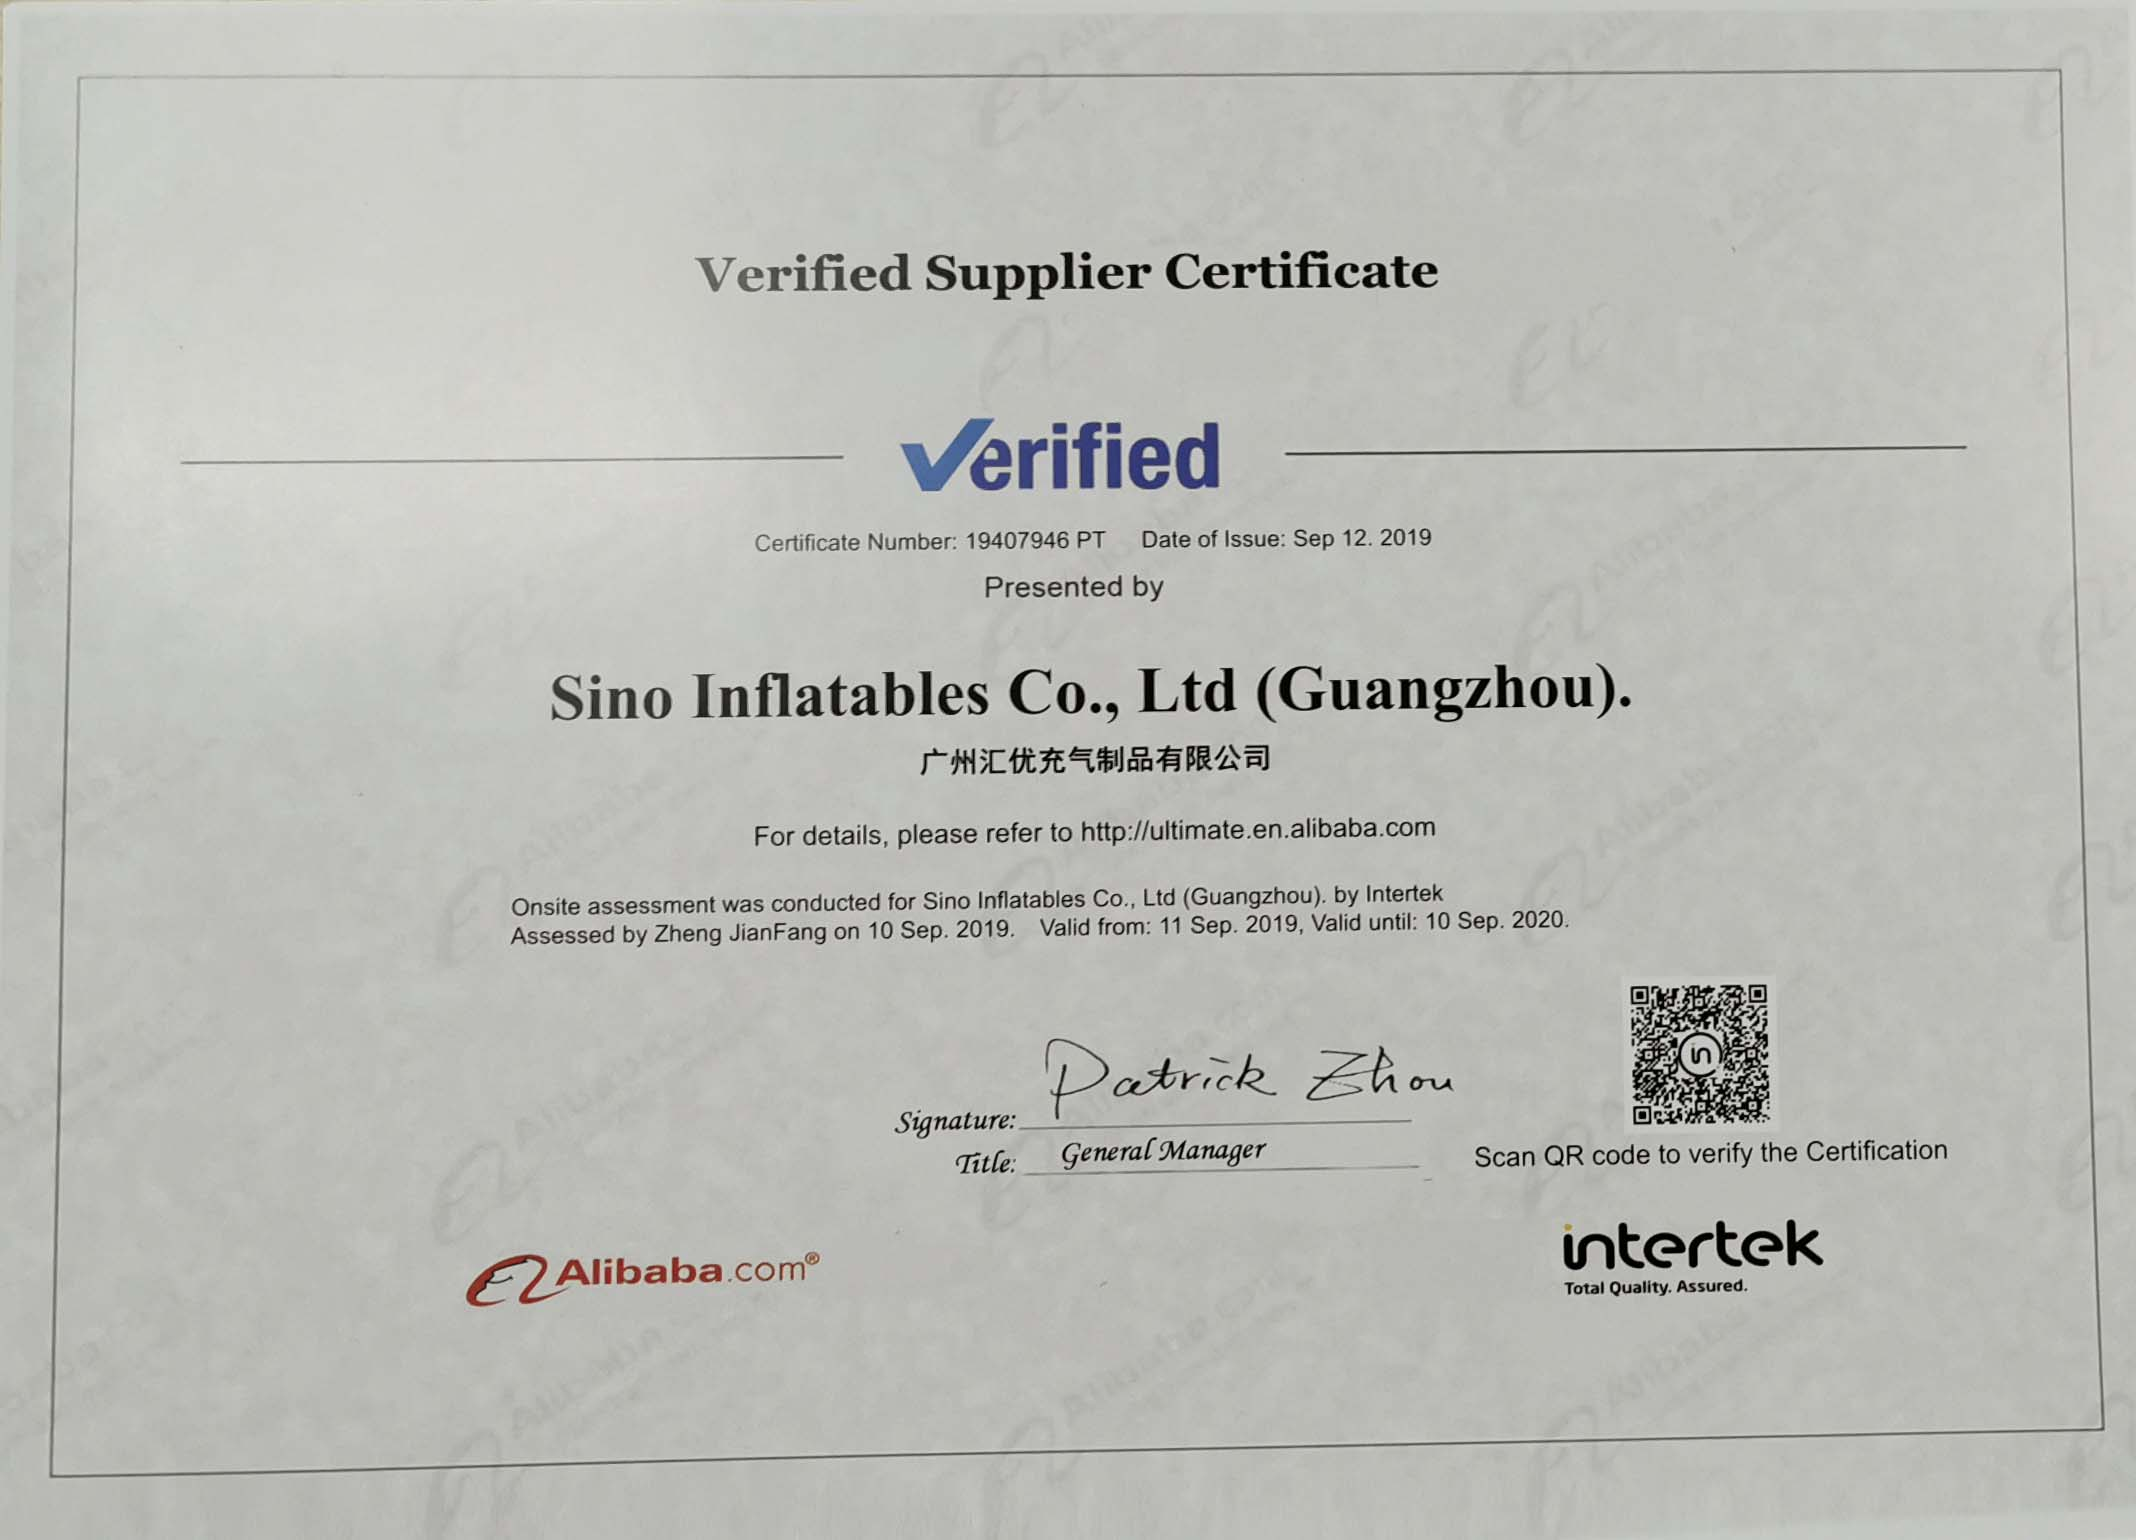 Sino inflatables has passed the system certification audit of Inertek.